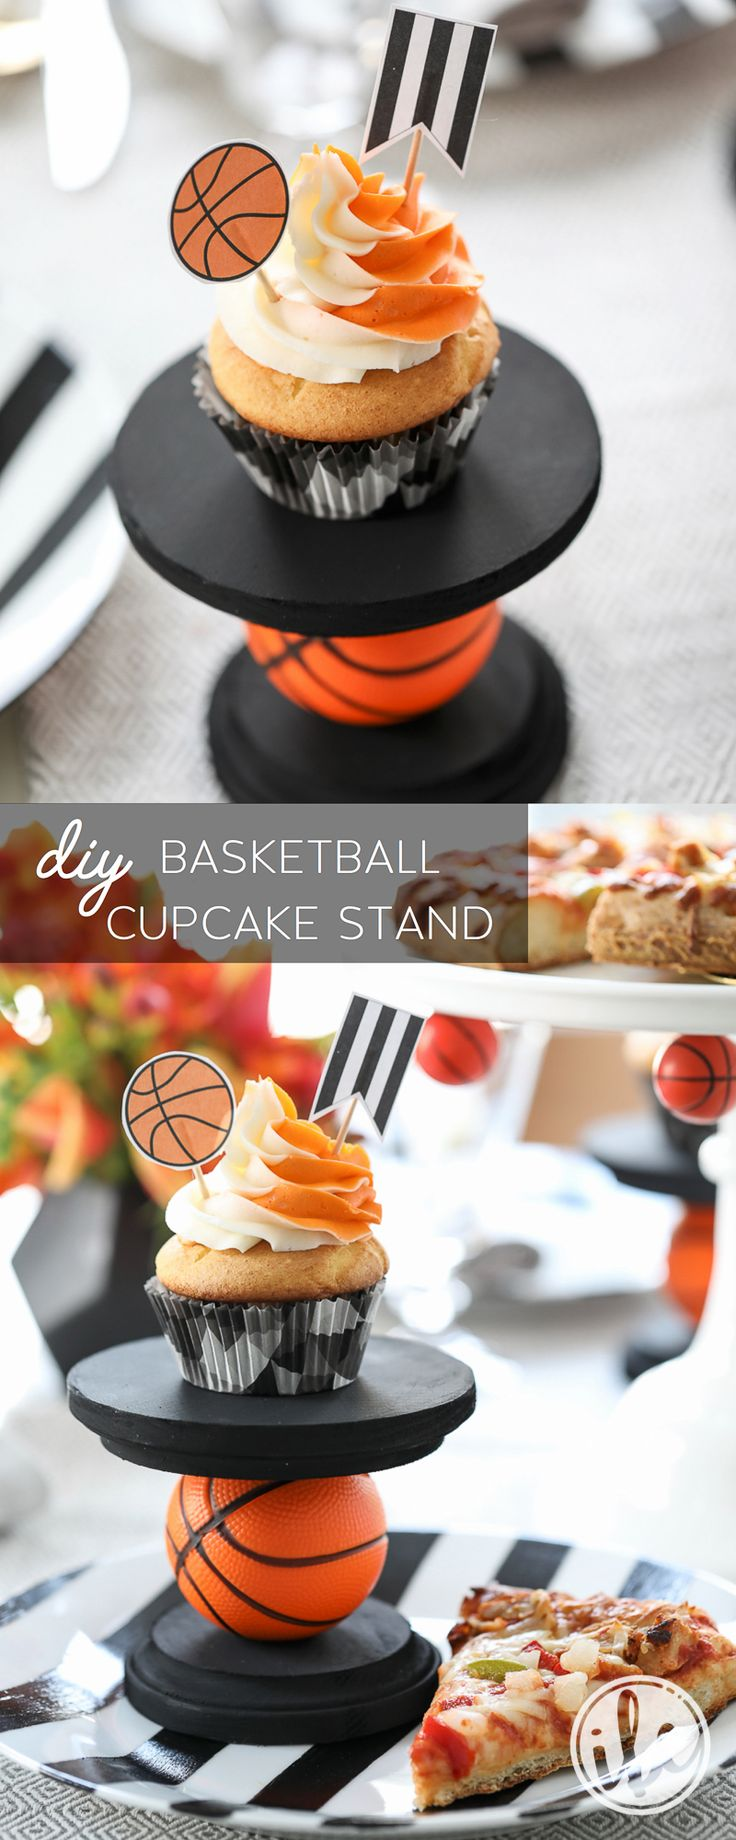 DIY Basketball Party entertaining ideas - cupcake stand - sports party with @digiorno Pizza! #RiseToTheOccasion #partner